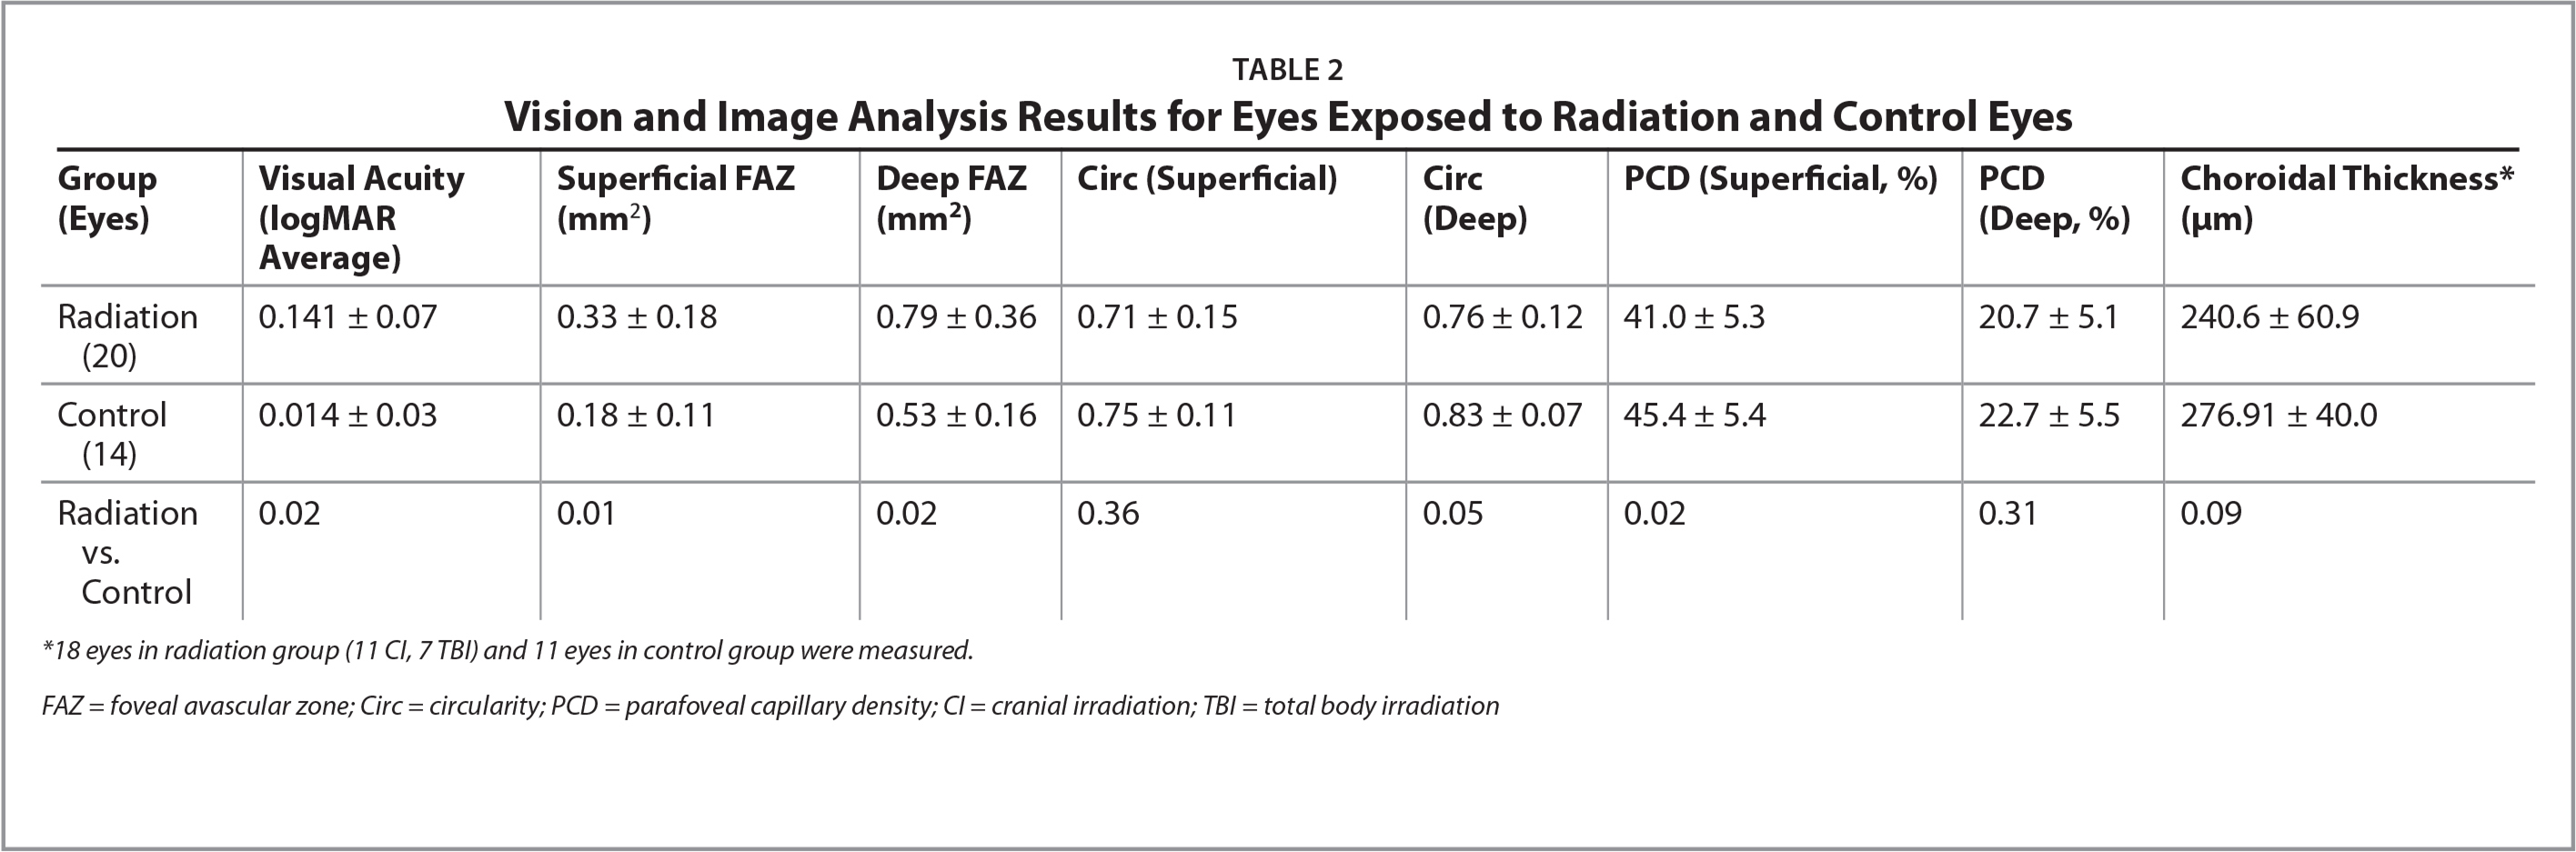 Vision and Image Analysis Results for Eyes Exposed to Radiation and Control Eyes